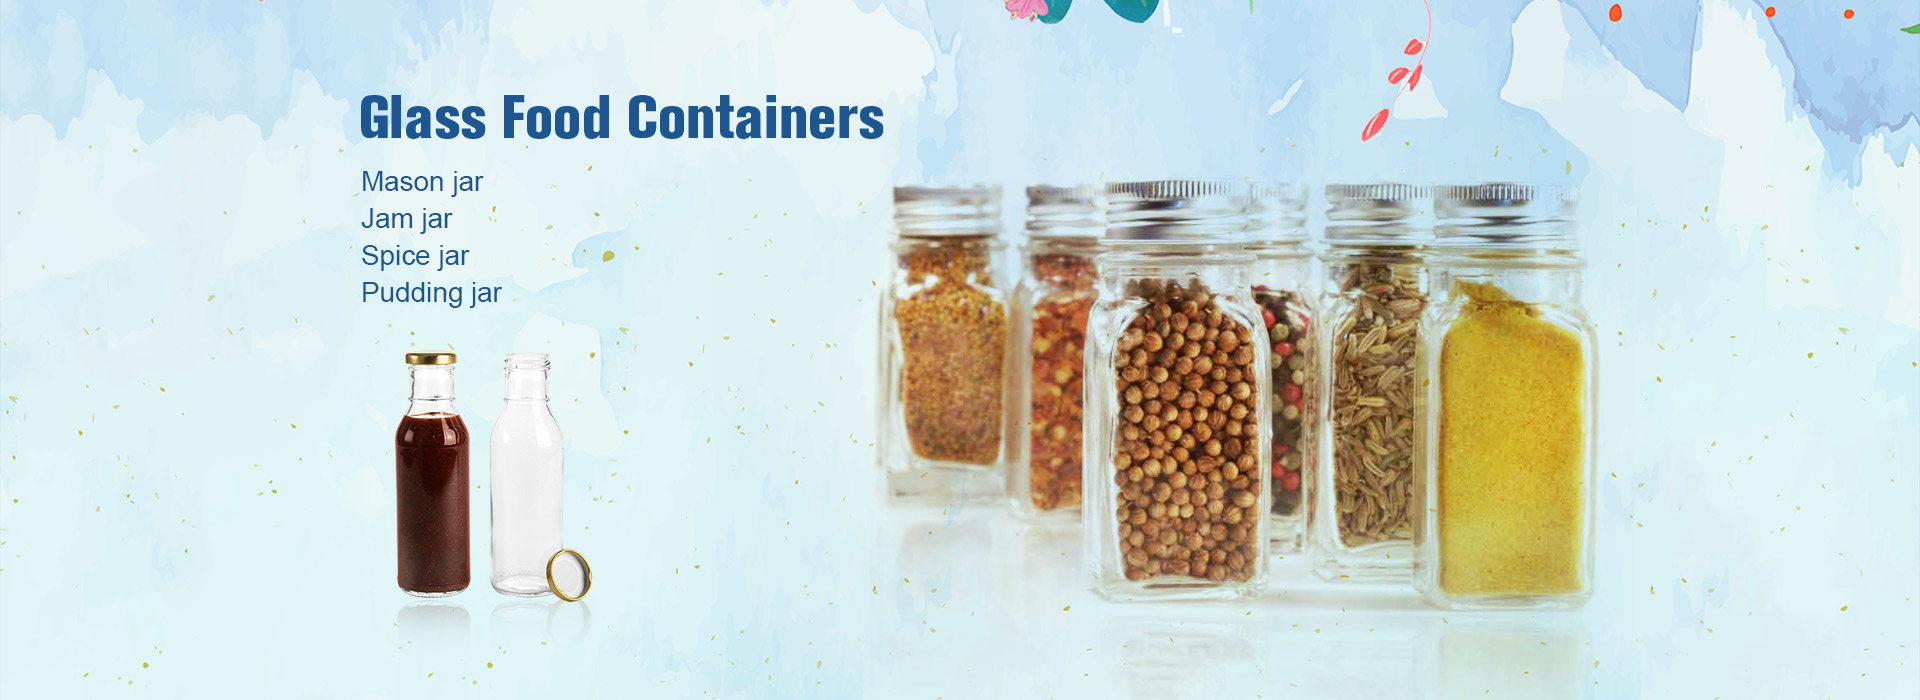 Glass Food Containers